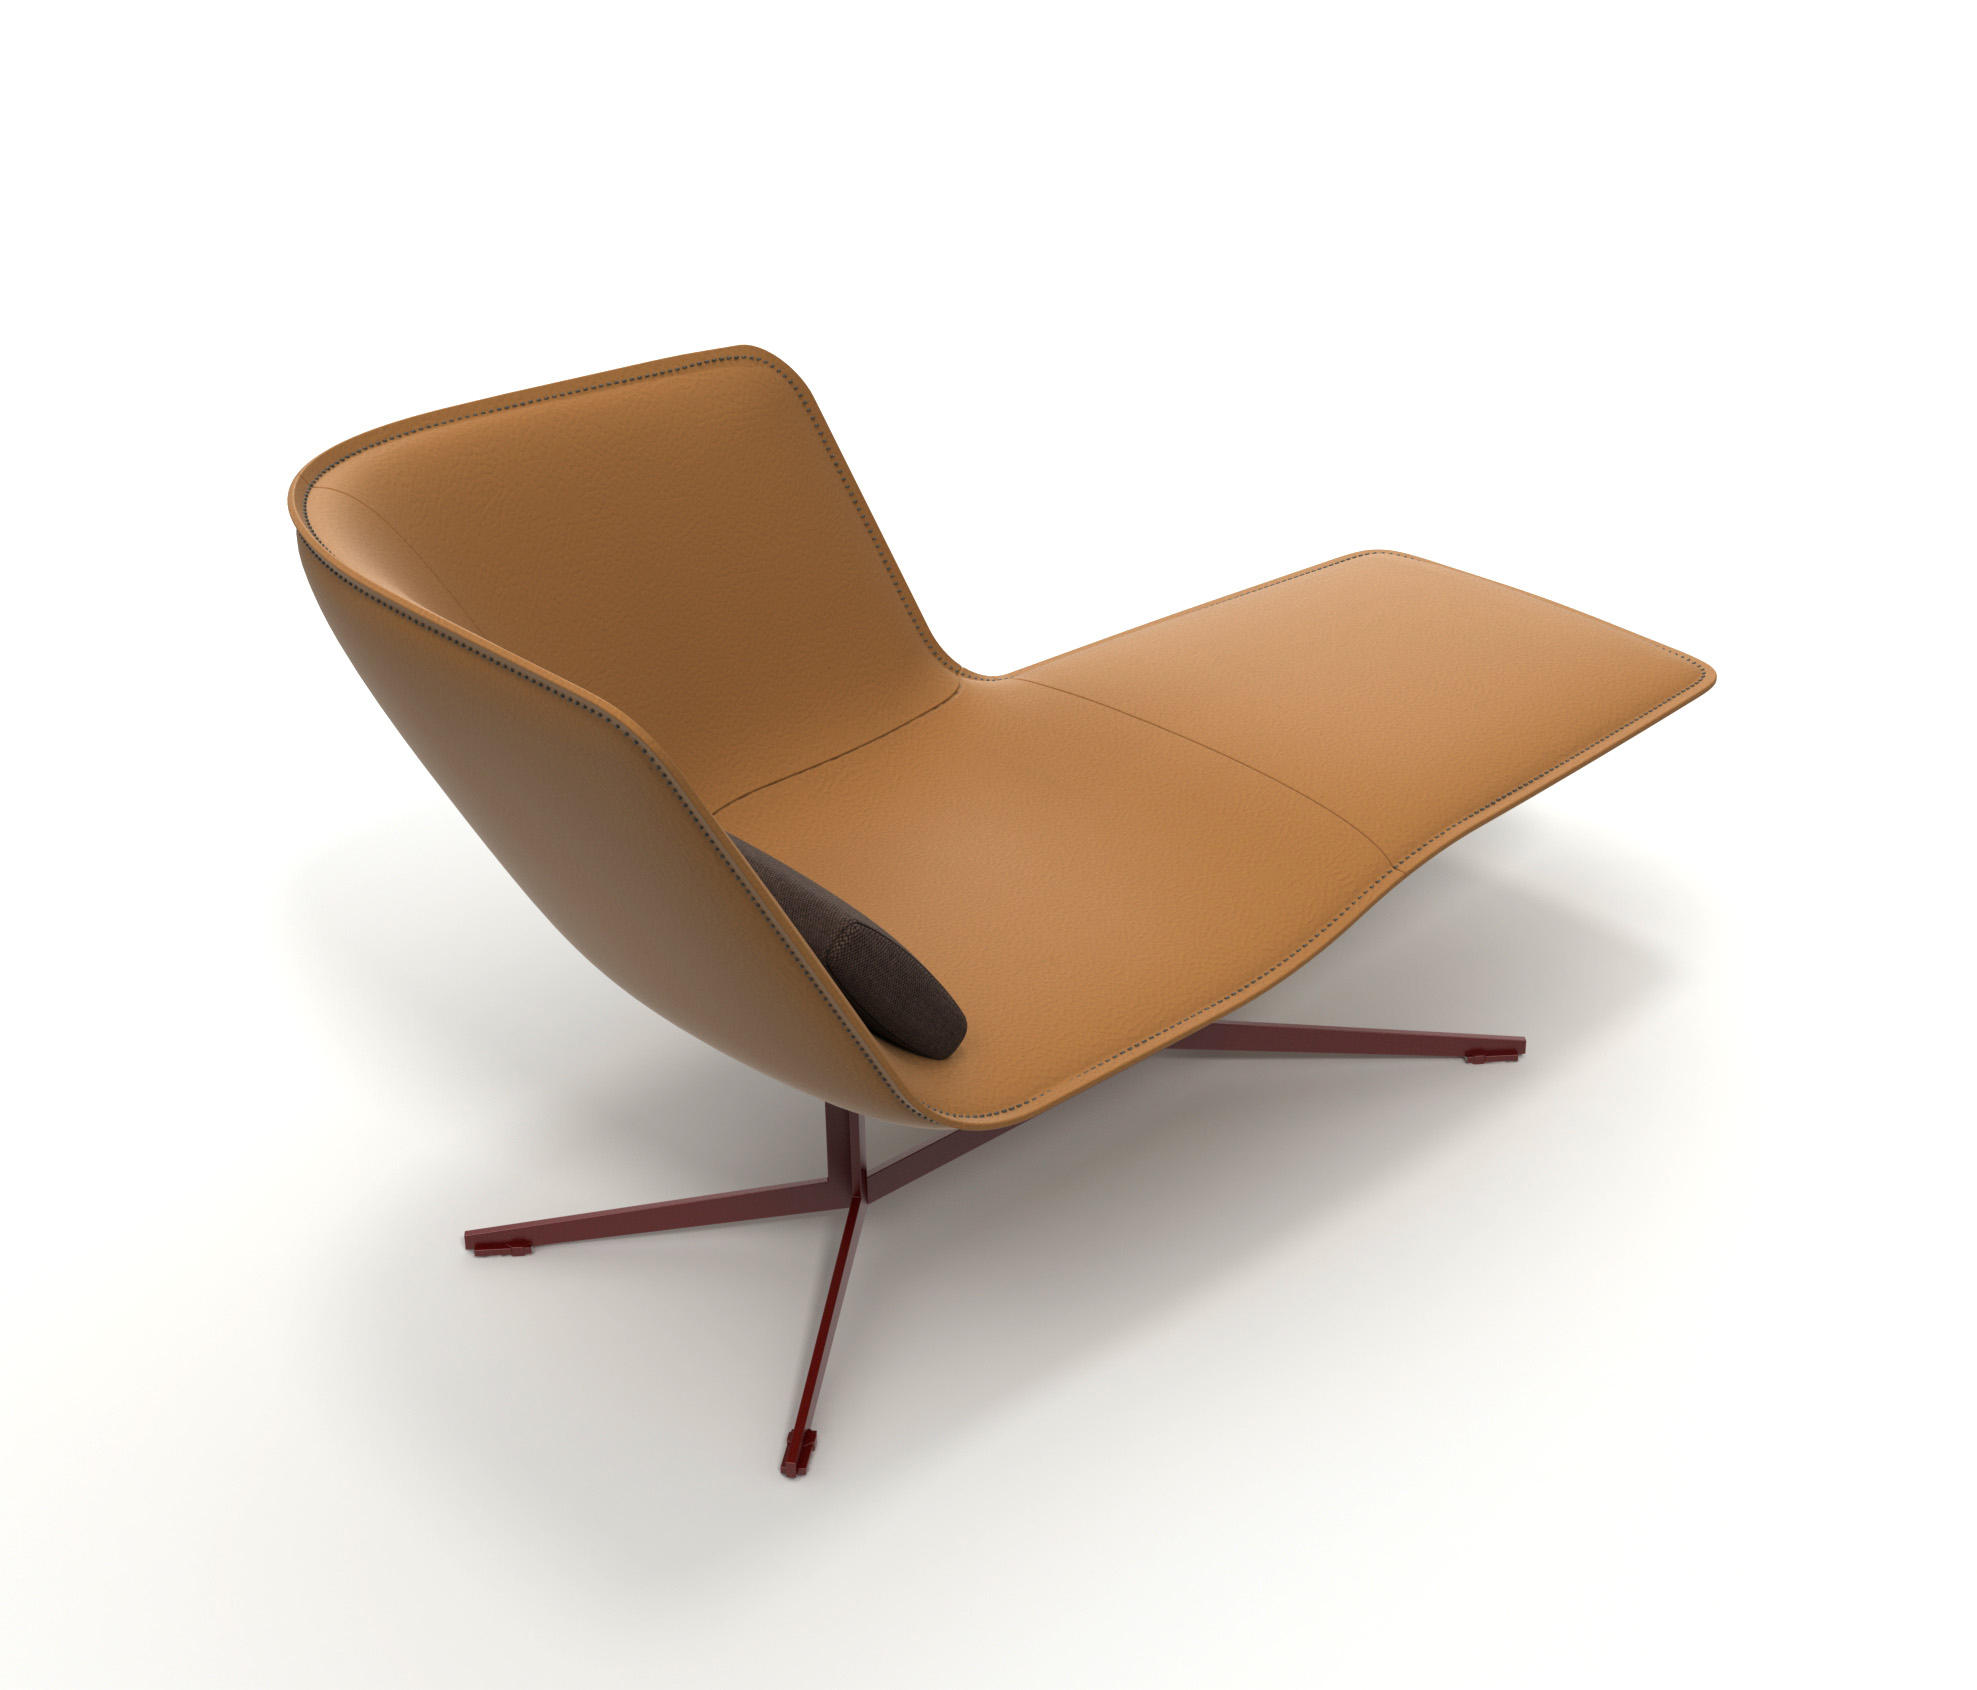 Eydo Chaise From Chaise Chaise Longues LemaArchitonic Eydo LemaArchitonic Eydo Longues From EIH29DW